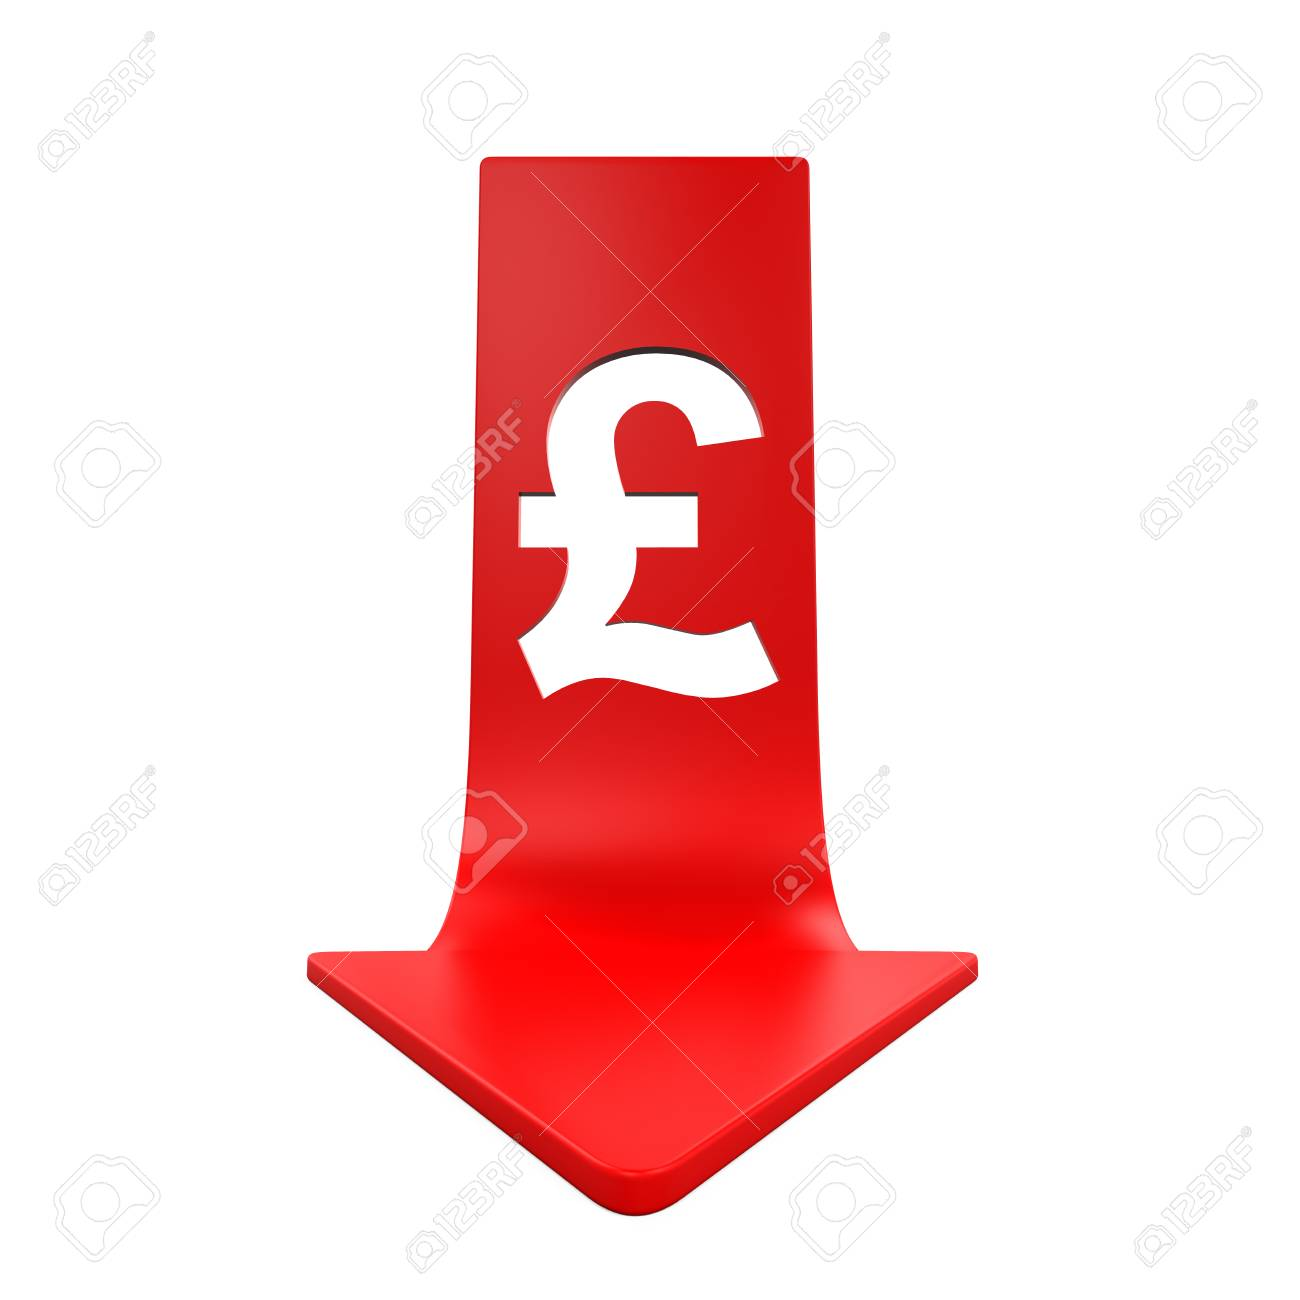 Great Britain Pound Symbol And Red Arrow Stock Photo Picture And